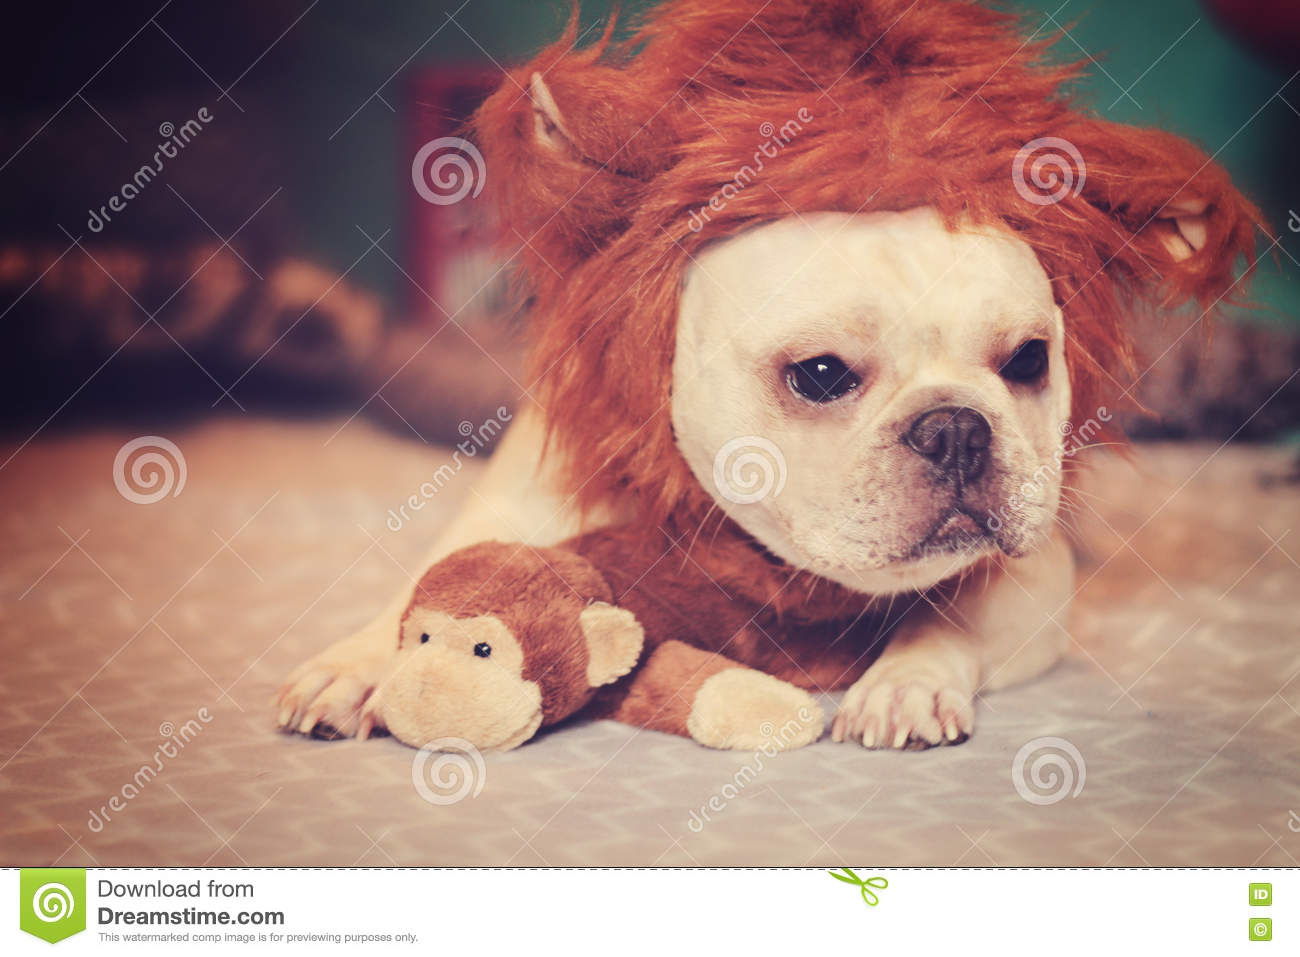 French Bulldog In A Lion Costume Stock Image - Image of cute, bulldog: 79306007